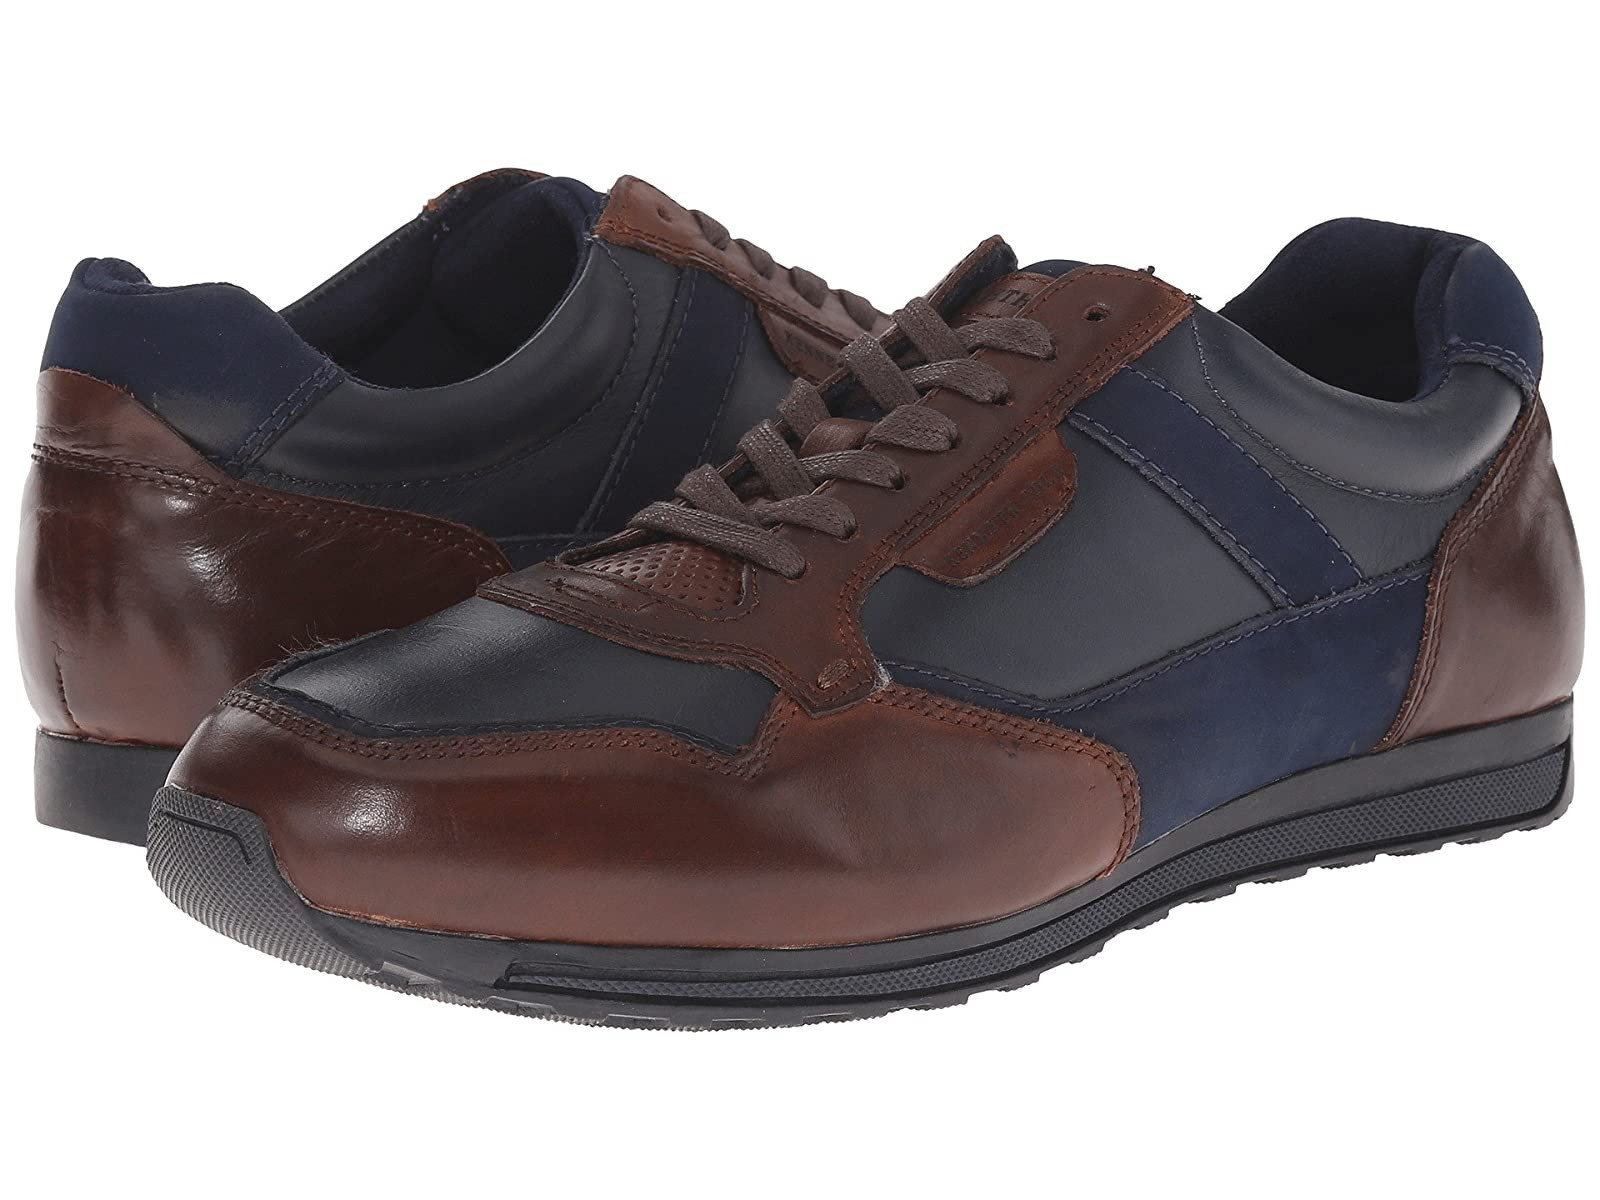 Kenneth Cole New York Can't Miss ItCheap and distinctive eye-catching shoes